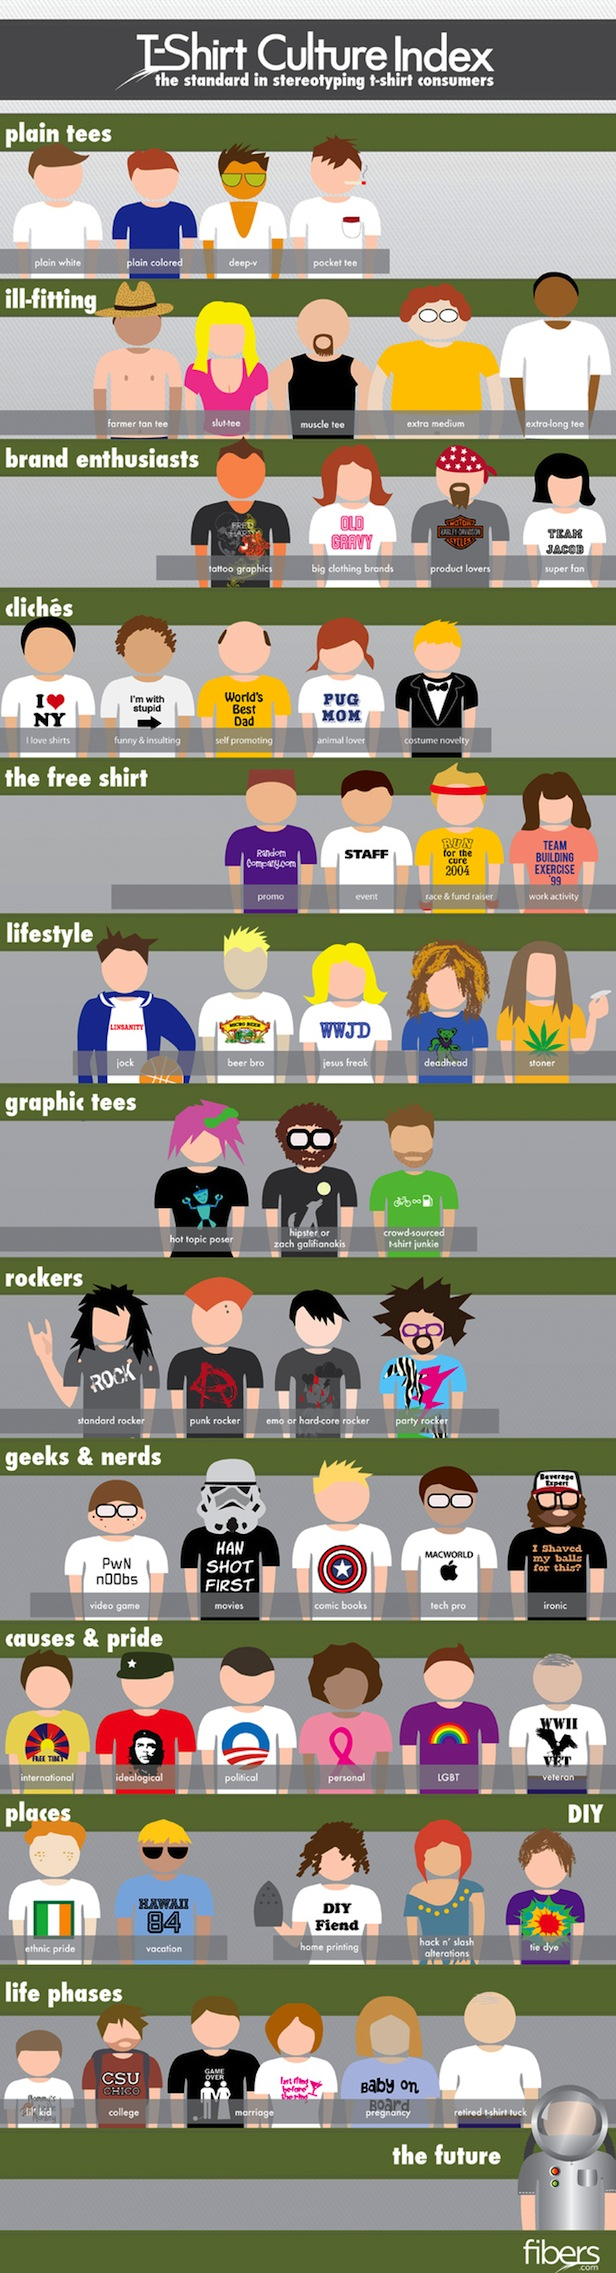 T-Shirt-Culture-Index-infographic